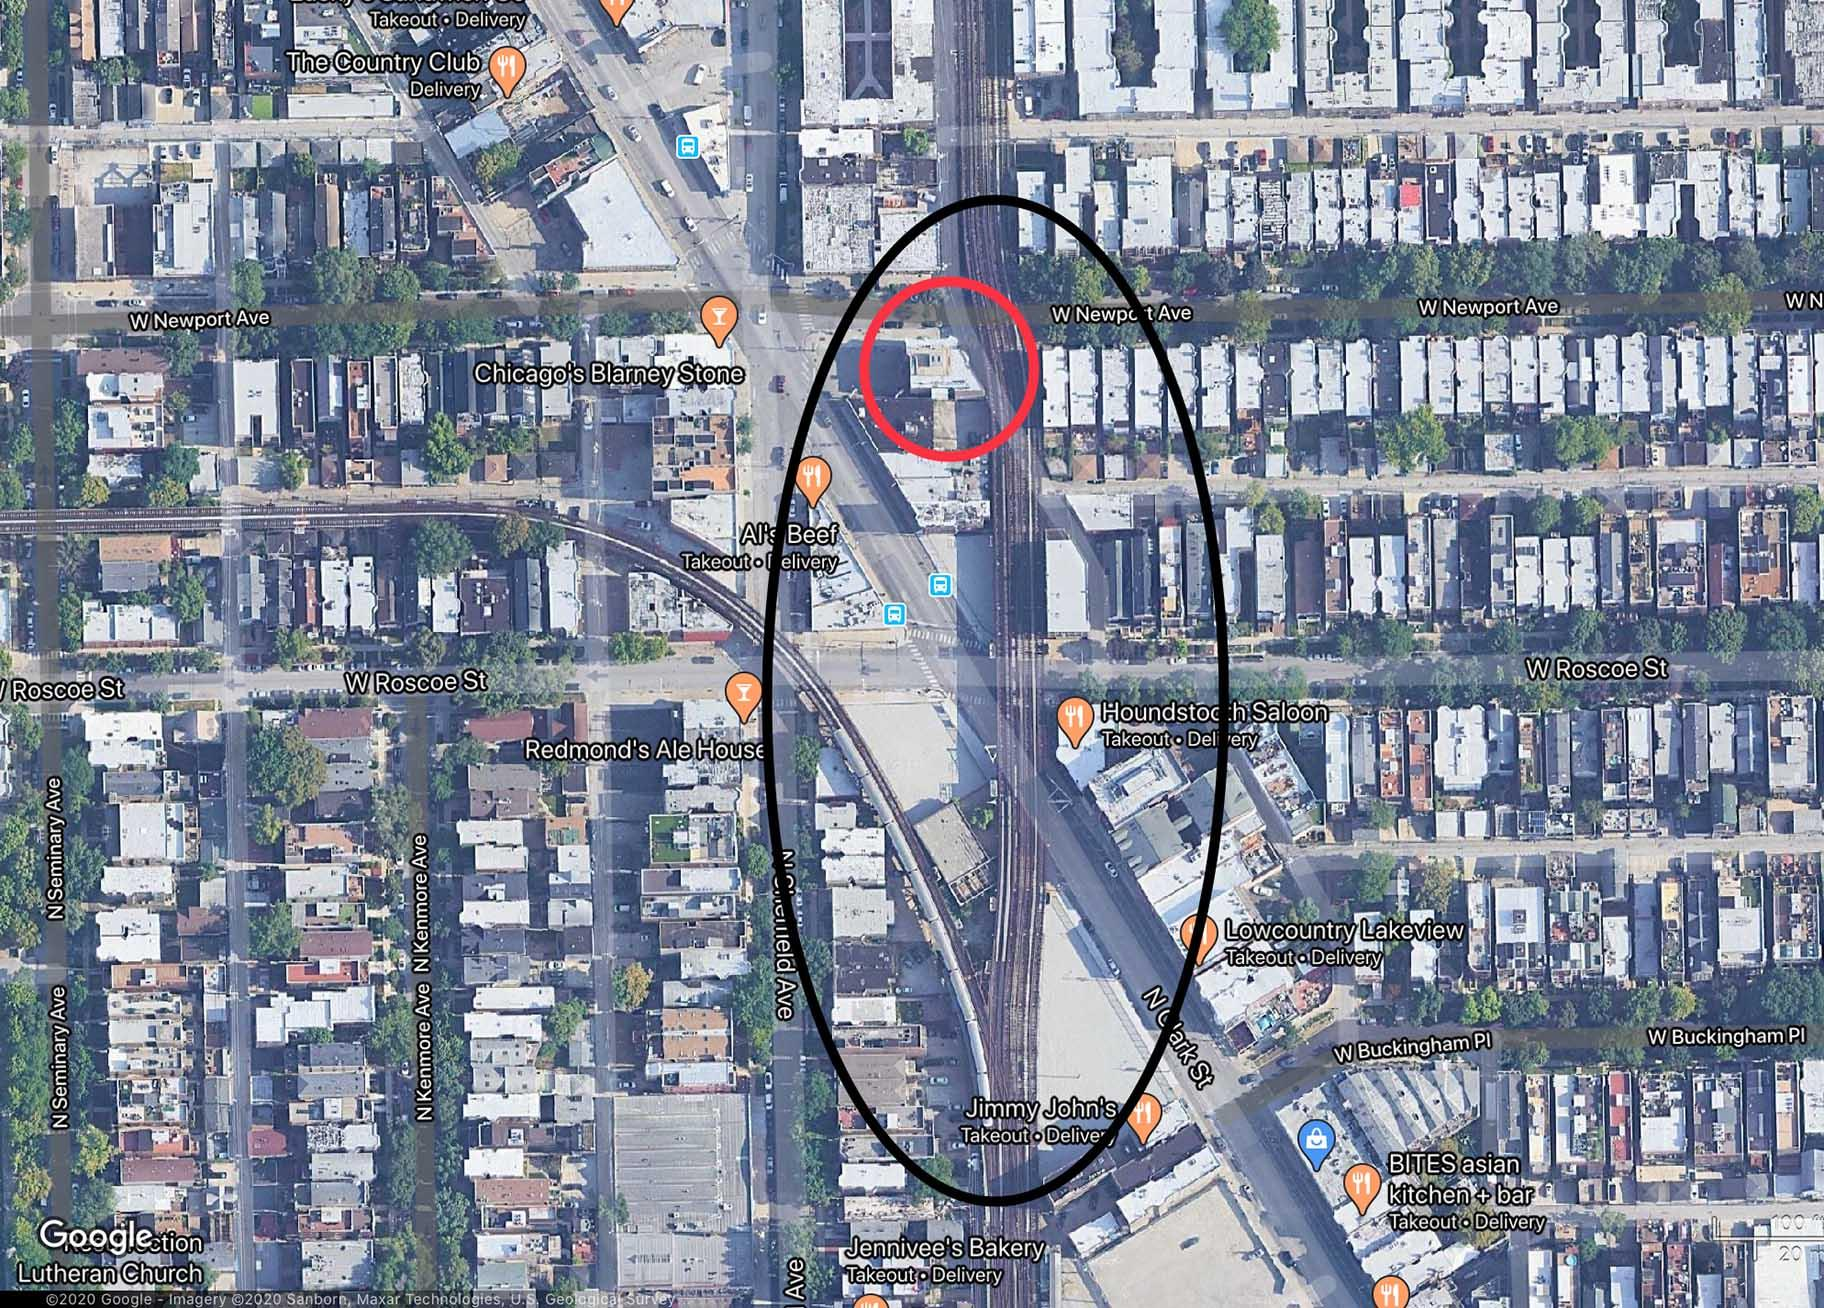 An overview shows the section of CTA track that will be straightened out, circled in black, with the location of the Vautravers Building, circled in red. (Credit: Google Maps)